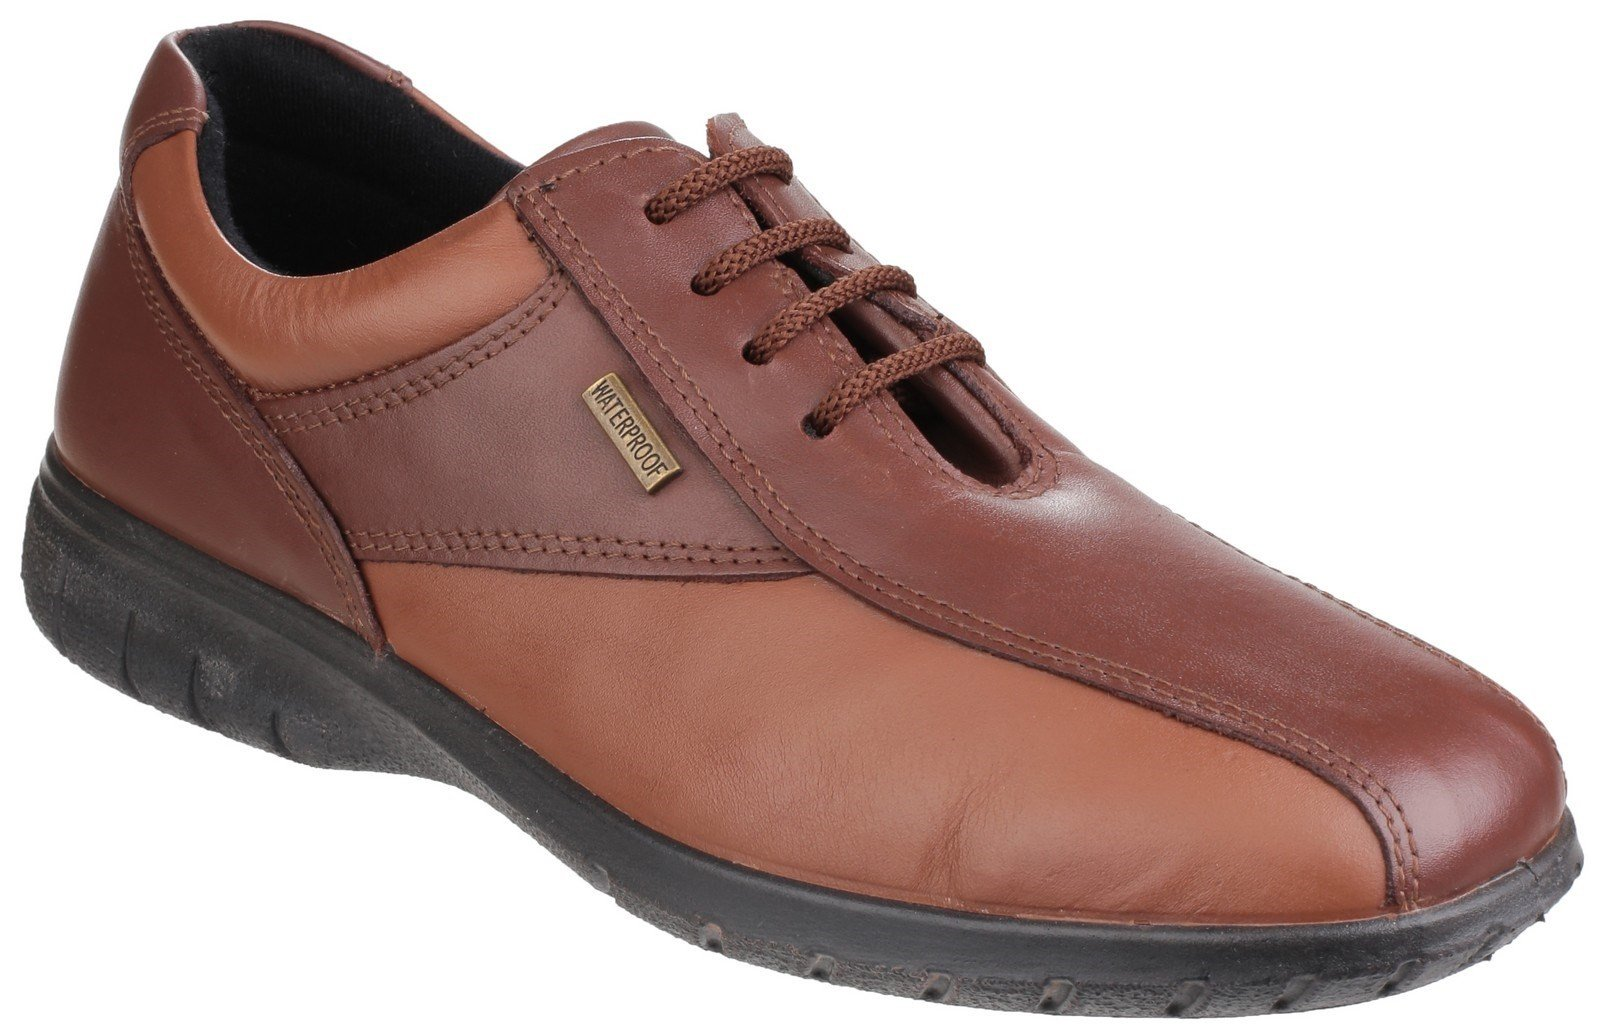 Cotswold Men's Collection Salford Shoe Various Colours 18154 - Brown 3